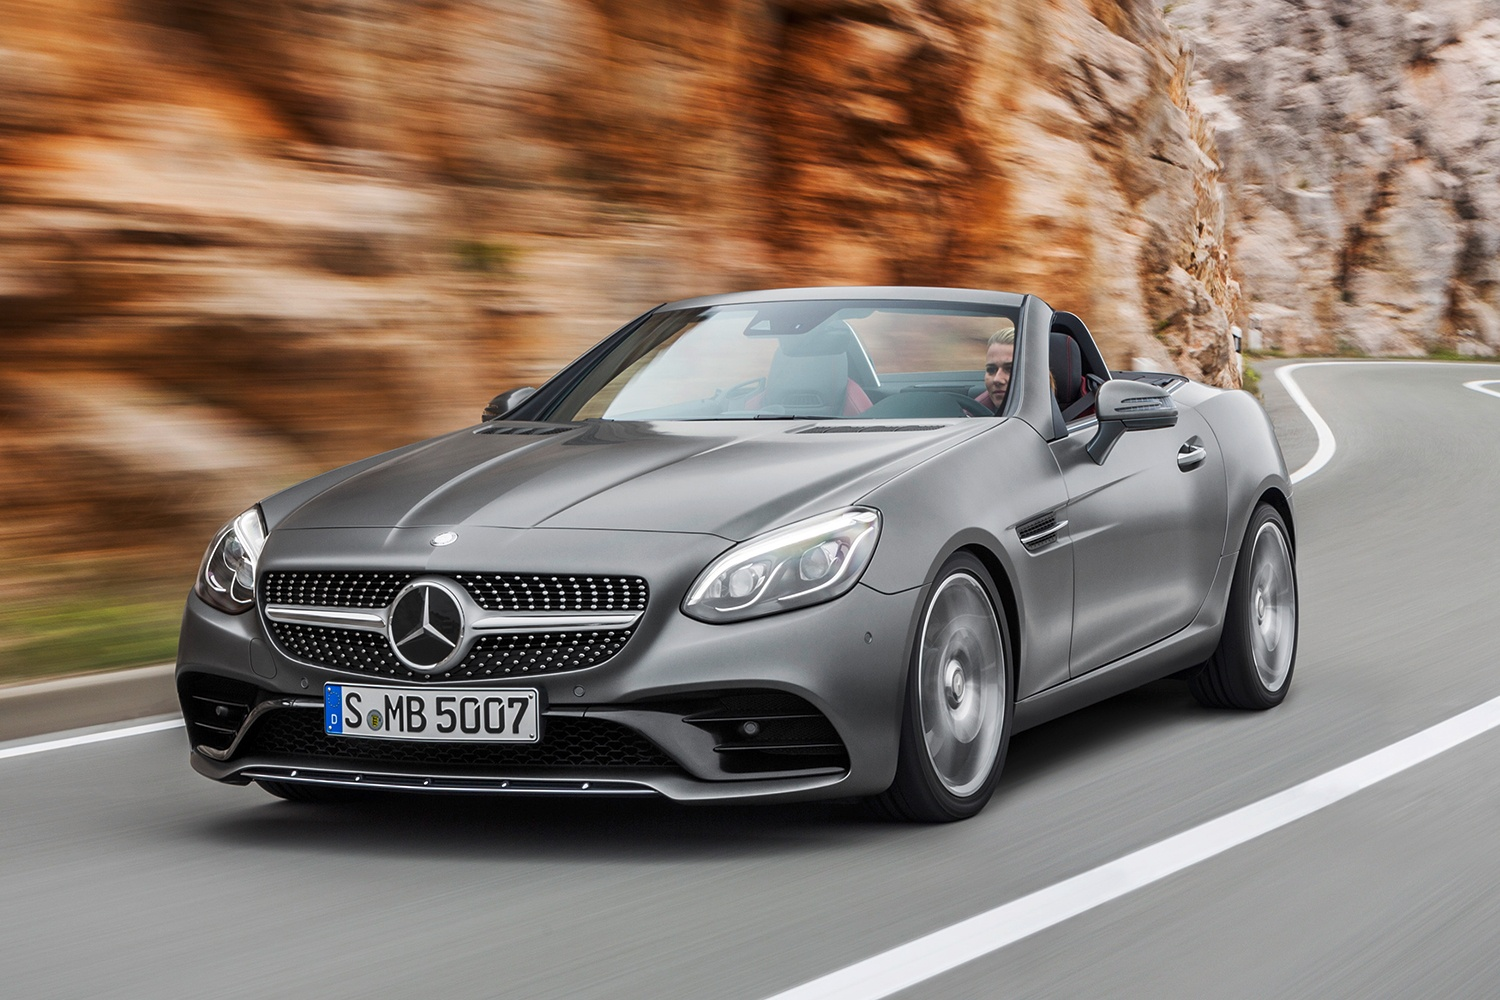 Mercedes benz slc 300 wallpaper full hd pictures for Slc mercedes benz